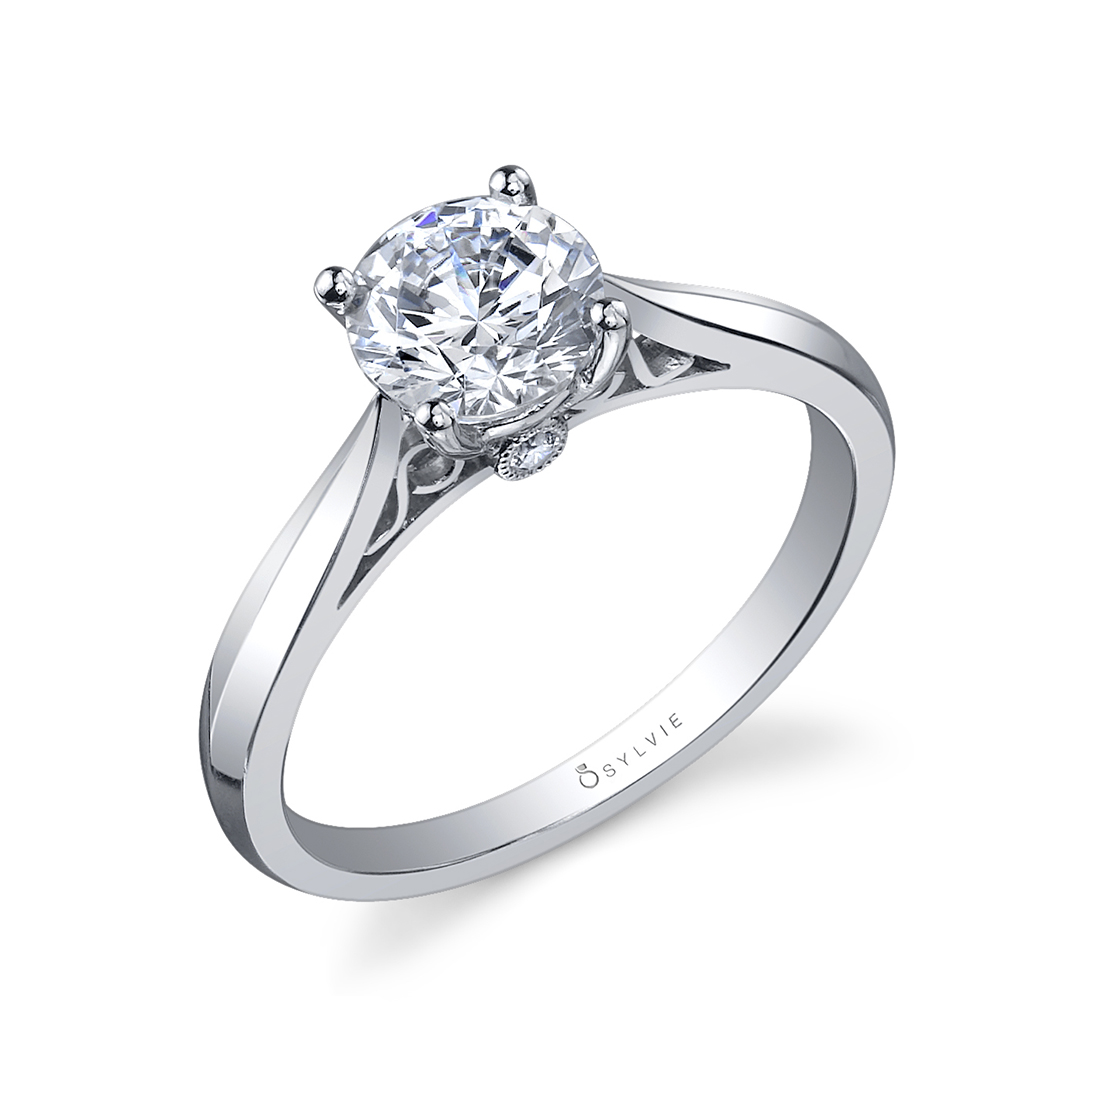 Round High Polish Solitaire Engagement Ring